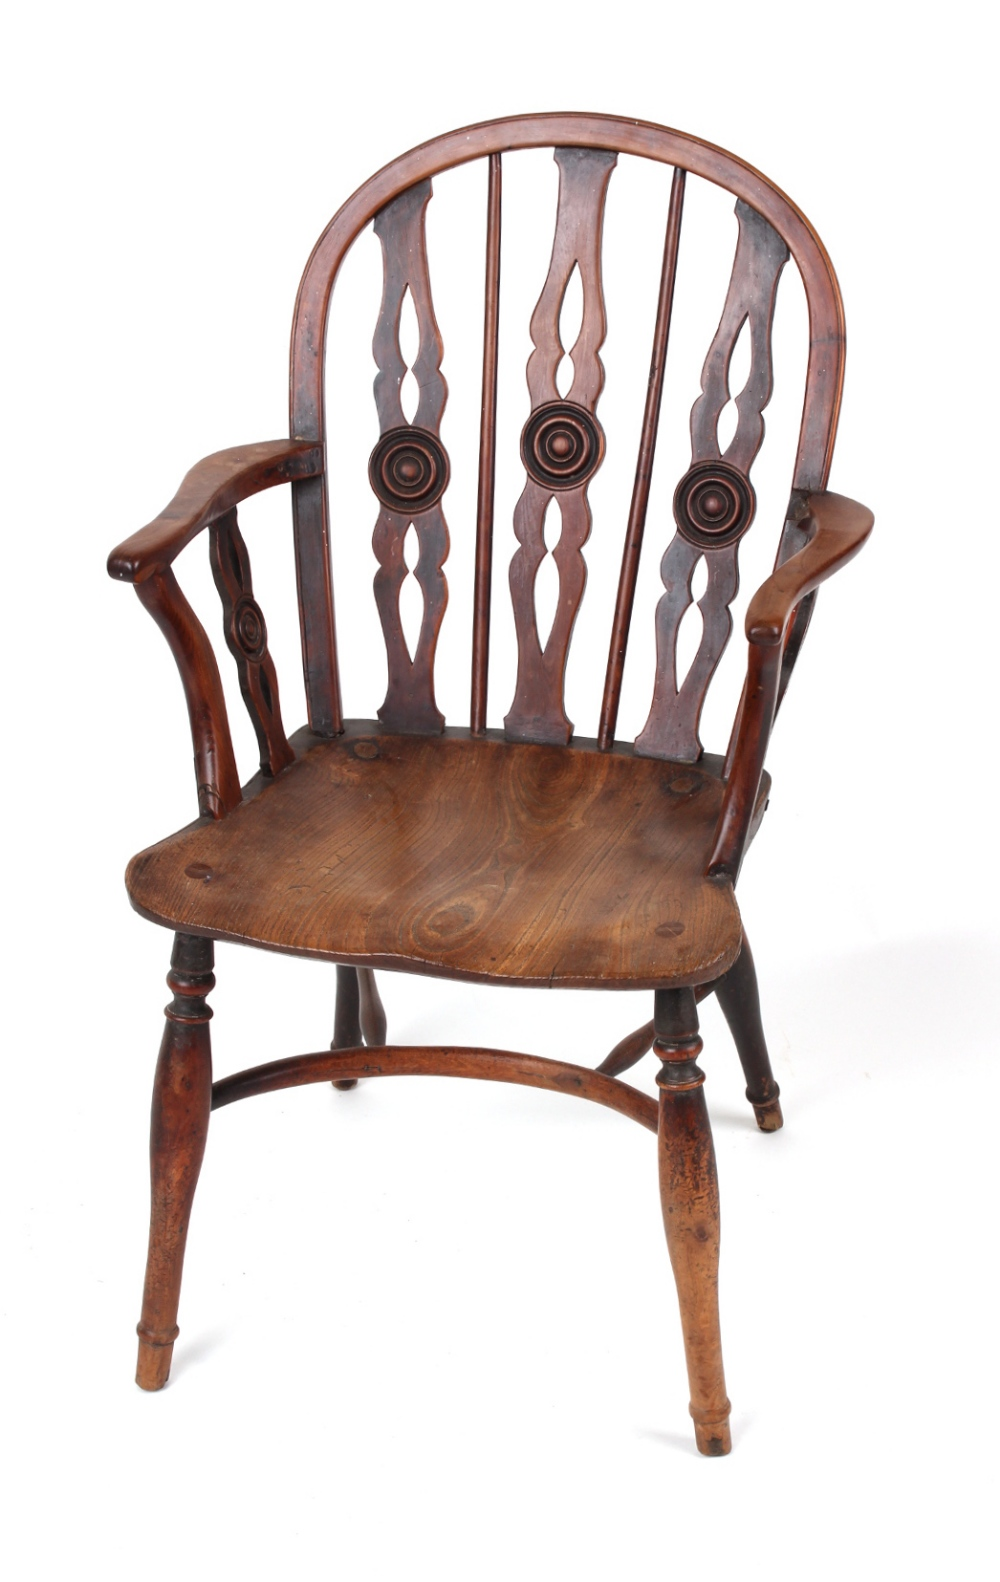 Property of a gentleman - an early 19th century yew wood Windsor elbow chair, of good colour,